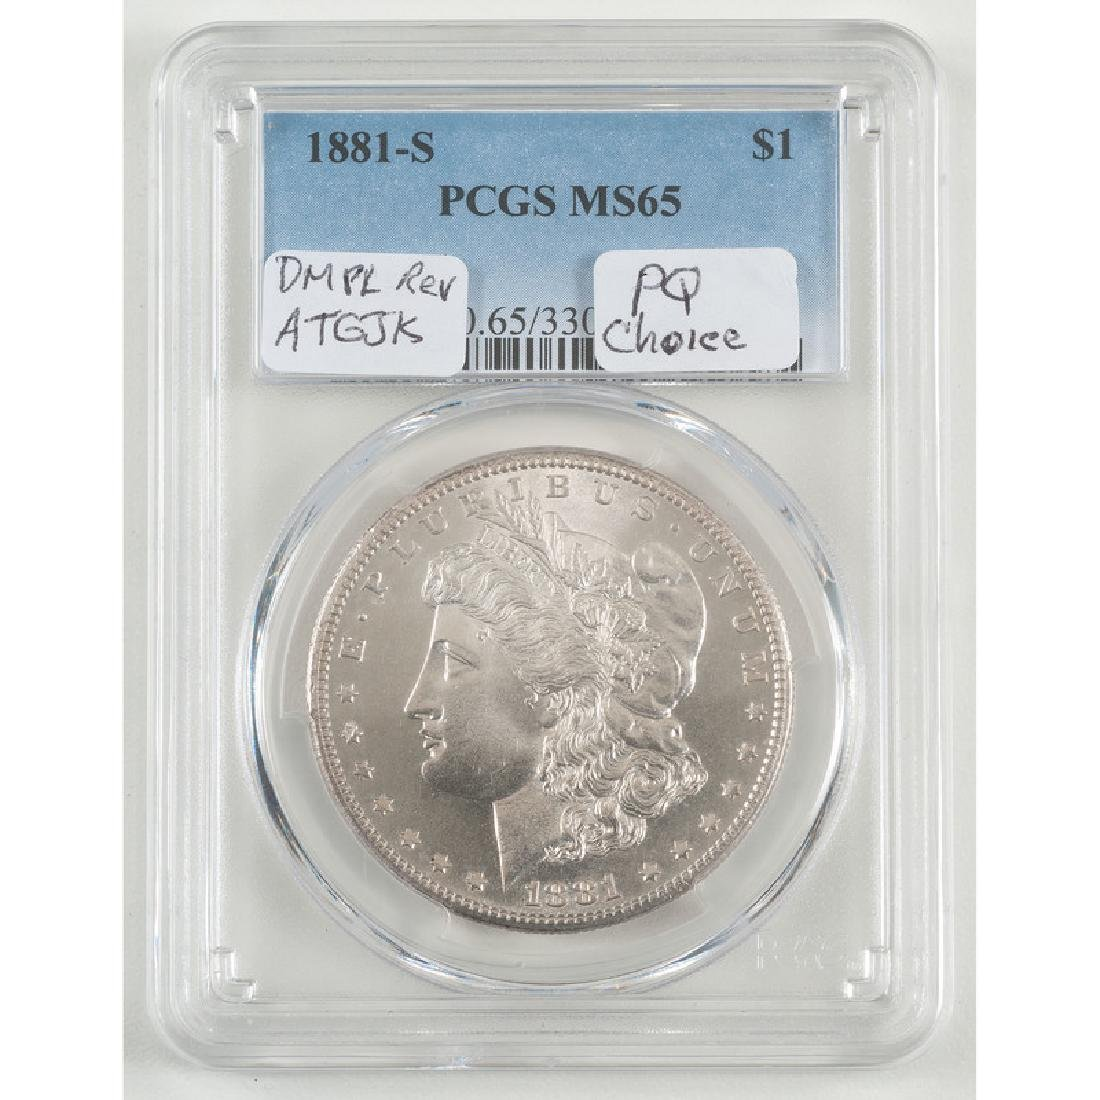 United States Morgan Silver Dollar 1881-S, PCGS MS65